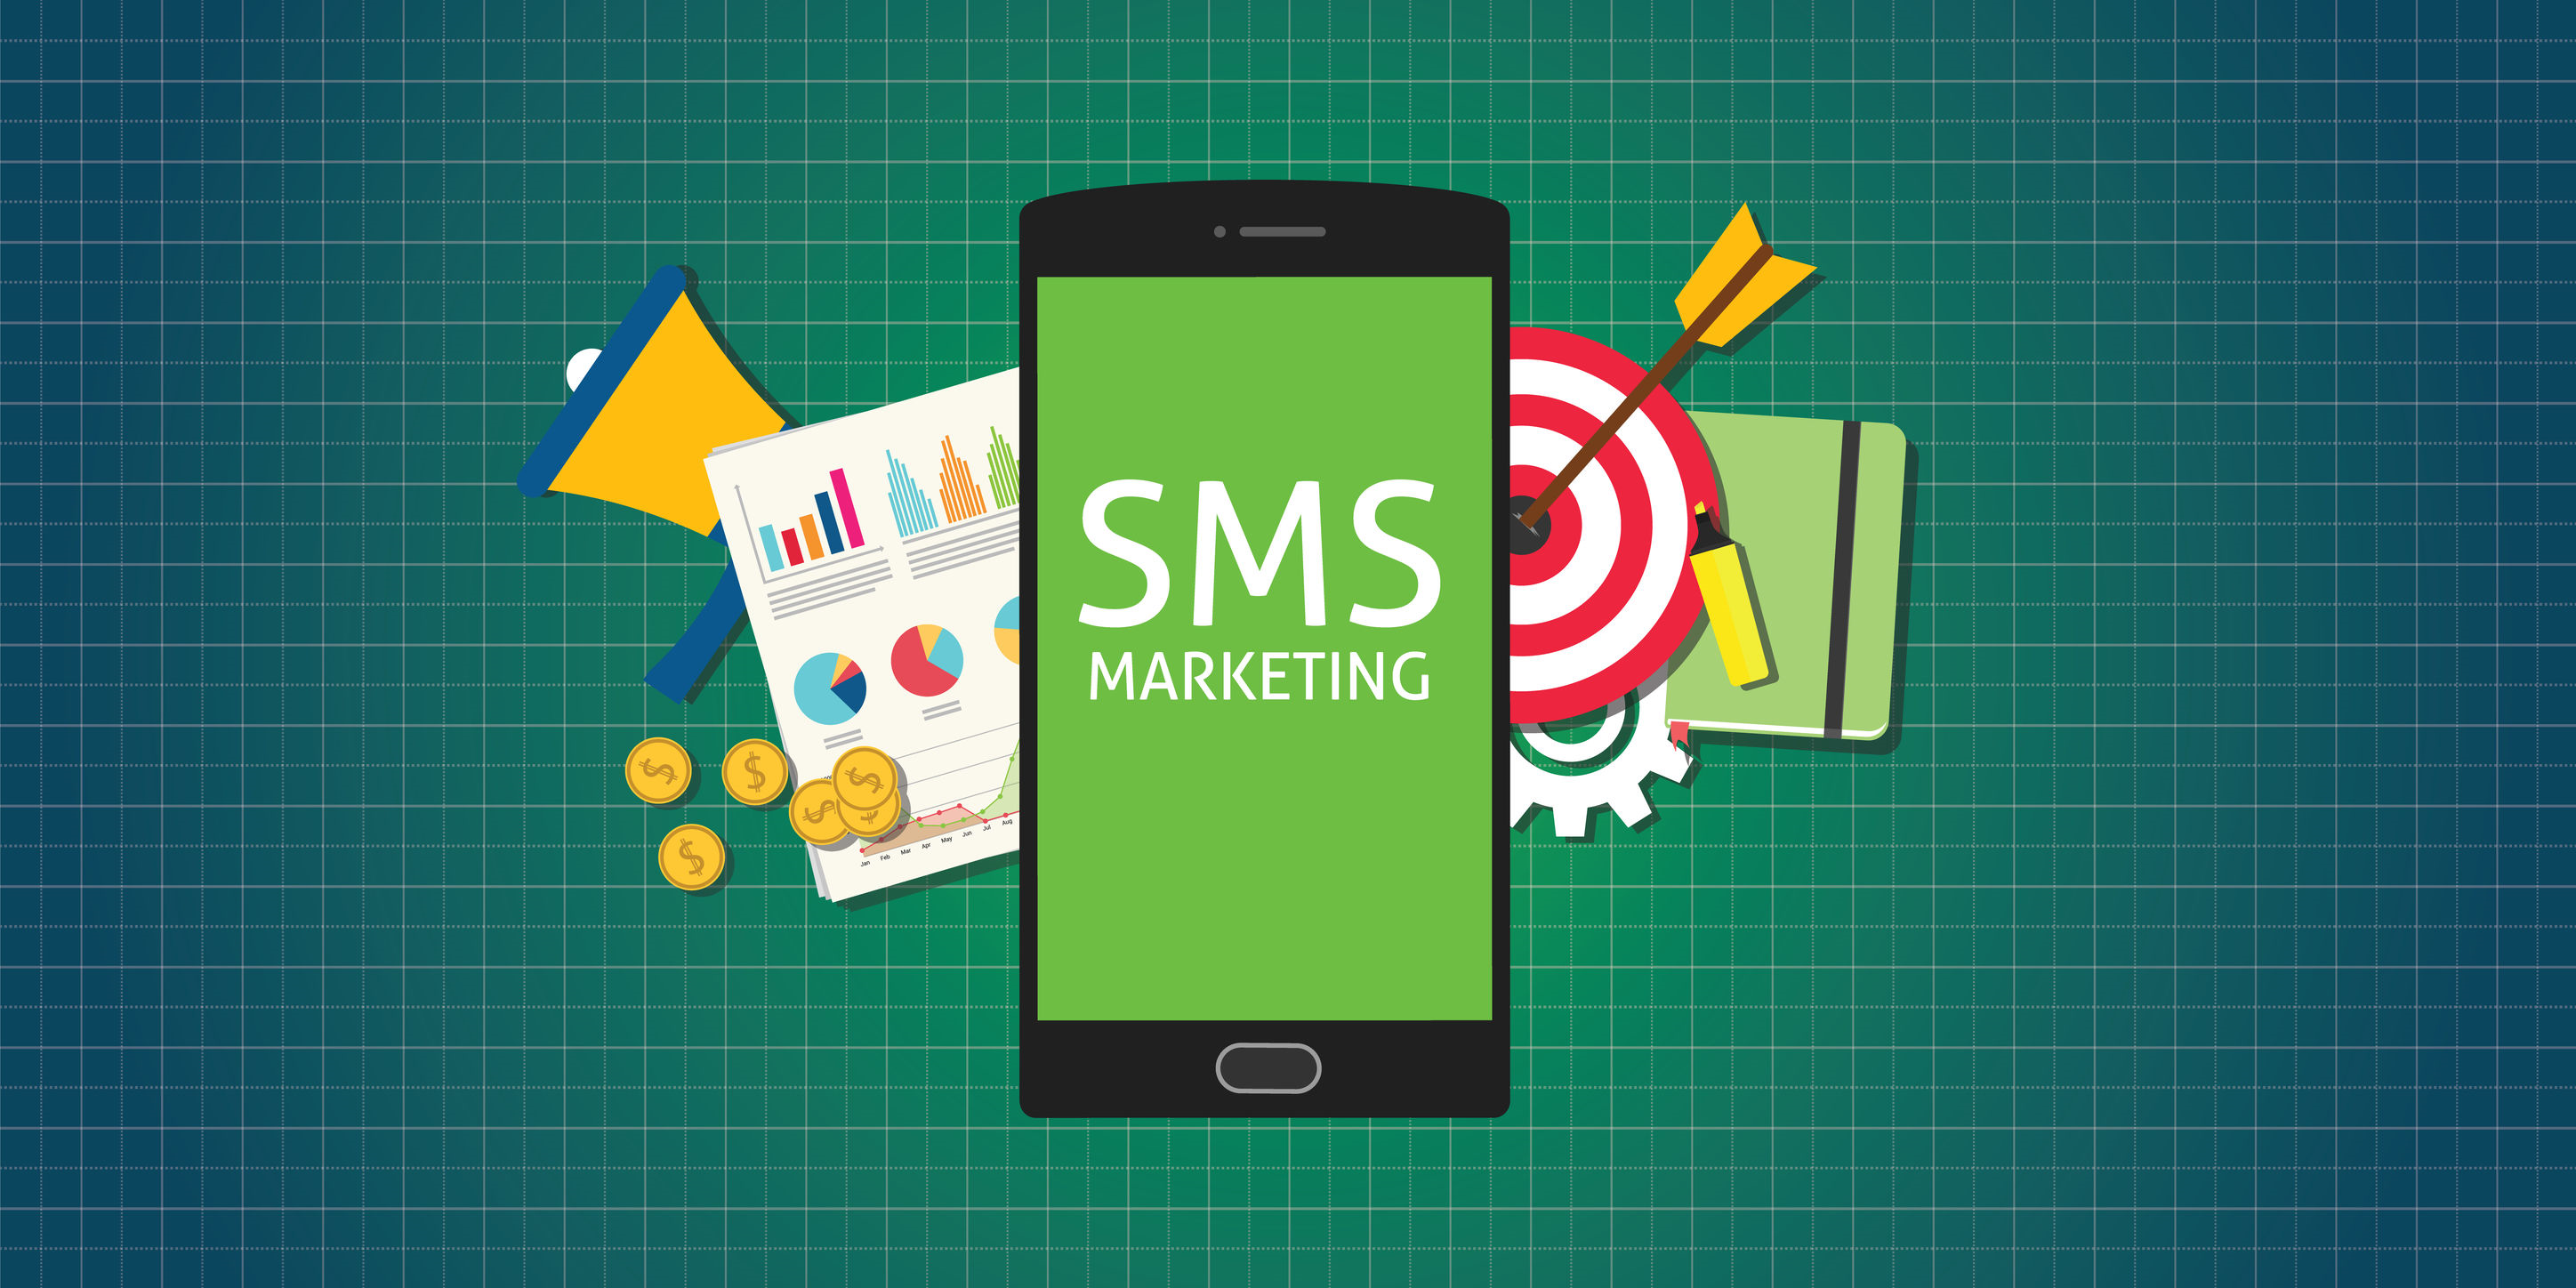 In this blog we will cover how to get started with SMS marketing.